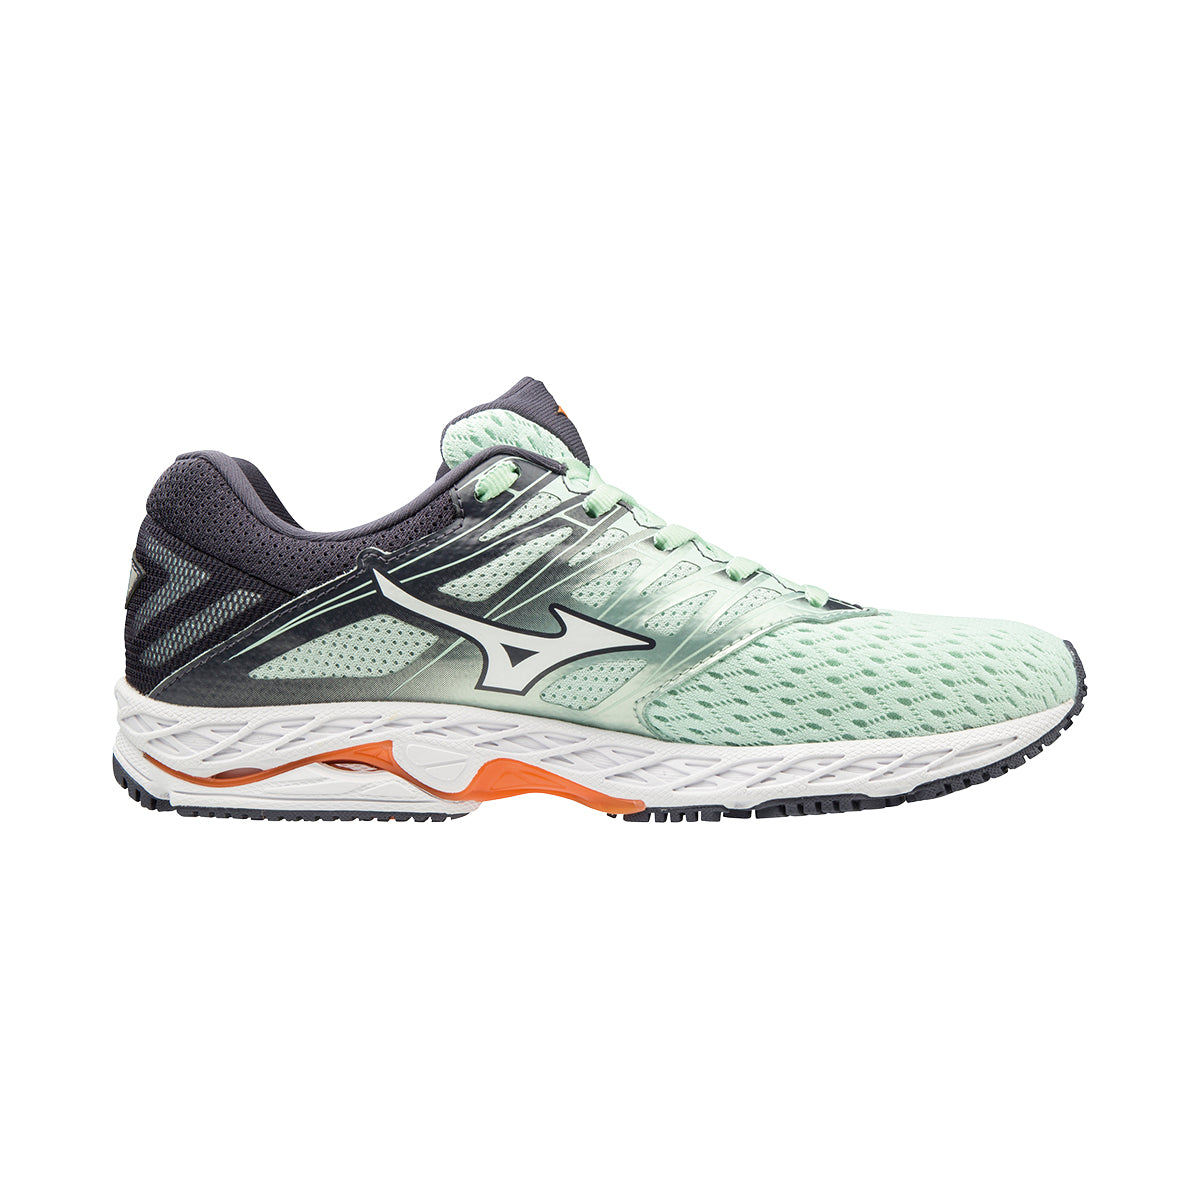 premium selection 85efc 1ebc2 Women's Wave Shadow 2 Running Shoe - Misty Jade/White